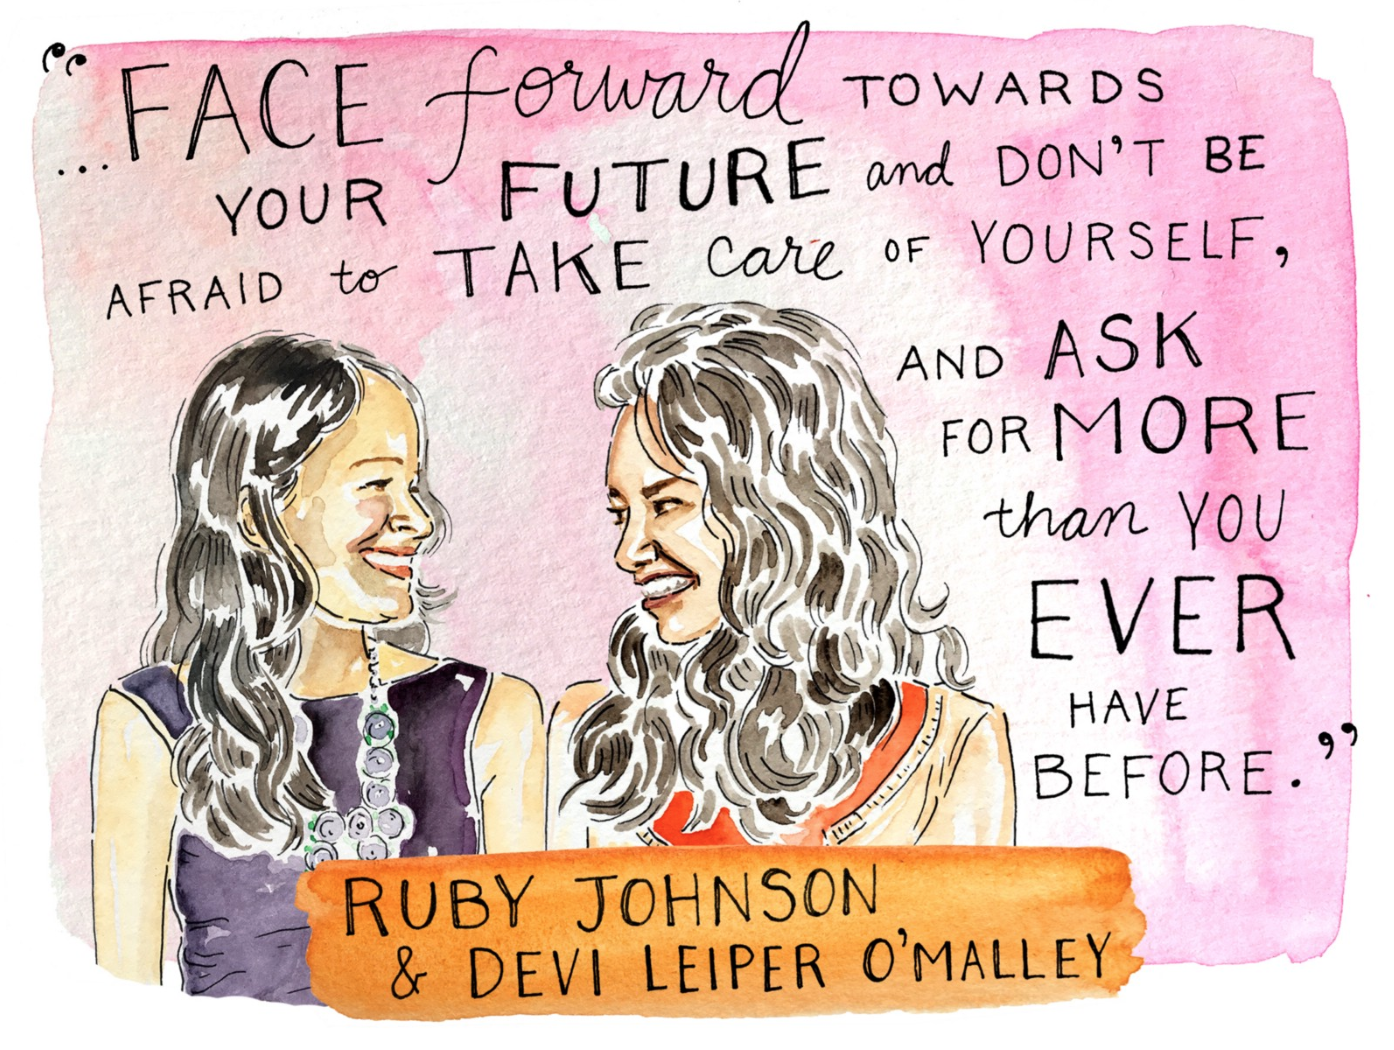 Devi Leiper O'Malley and Ruby Johnson   As co-directors of the  FRIDA (Flexibility, Resources, Inclusivity, Diversity, Action) Fund , Devi Leiper O'Malley and Ruby Johnson are helping young feminists harness their collective power to transform their communities. FRIDA has declared war on the funding gap for young feminist movements, directing its resources to girls around the globe who are working to end violence, promote human rights, and disrupt the status quo.